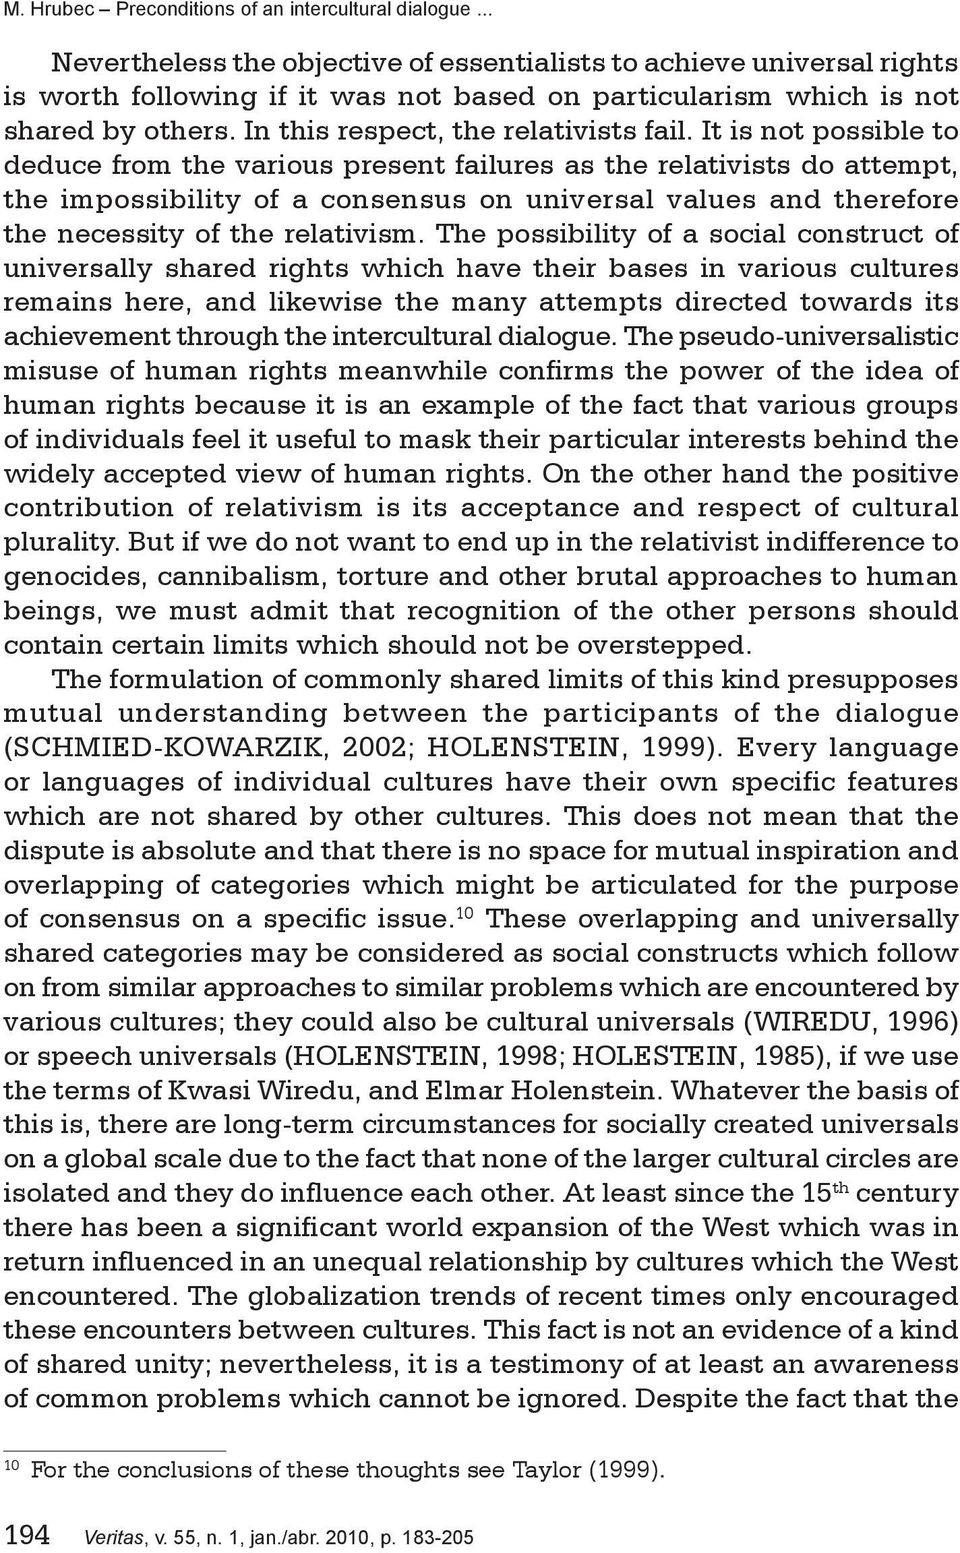 The possibility of a social construct of universally shared rights which have their bases in various cultures remains here, and likewise the many attempts directed towards its achievement through the